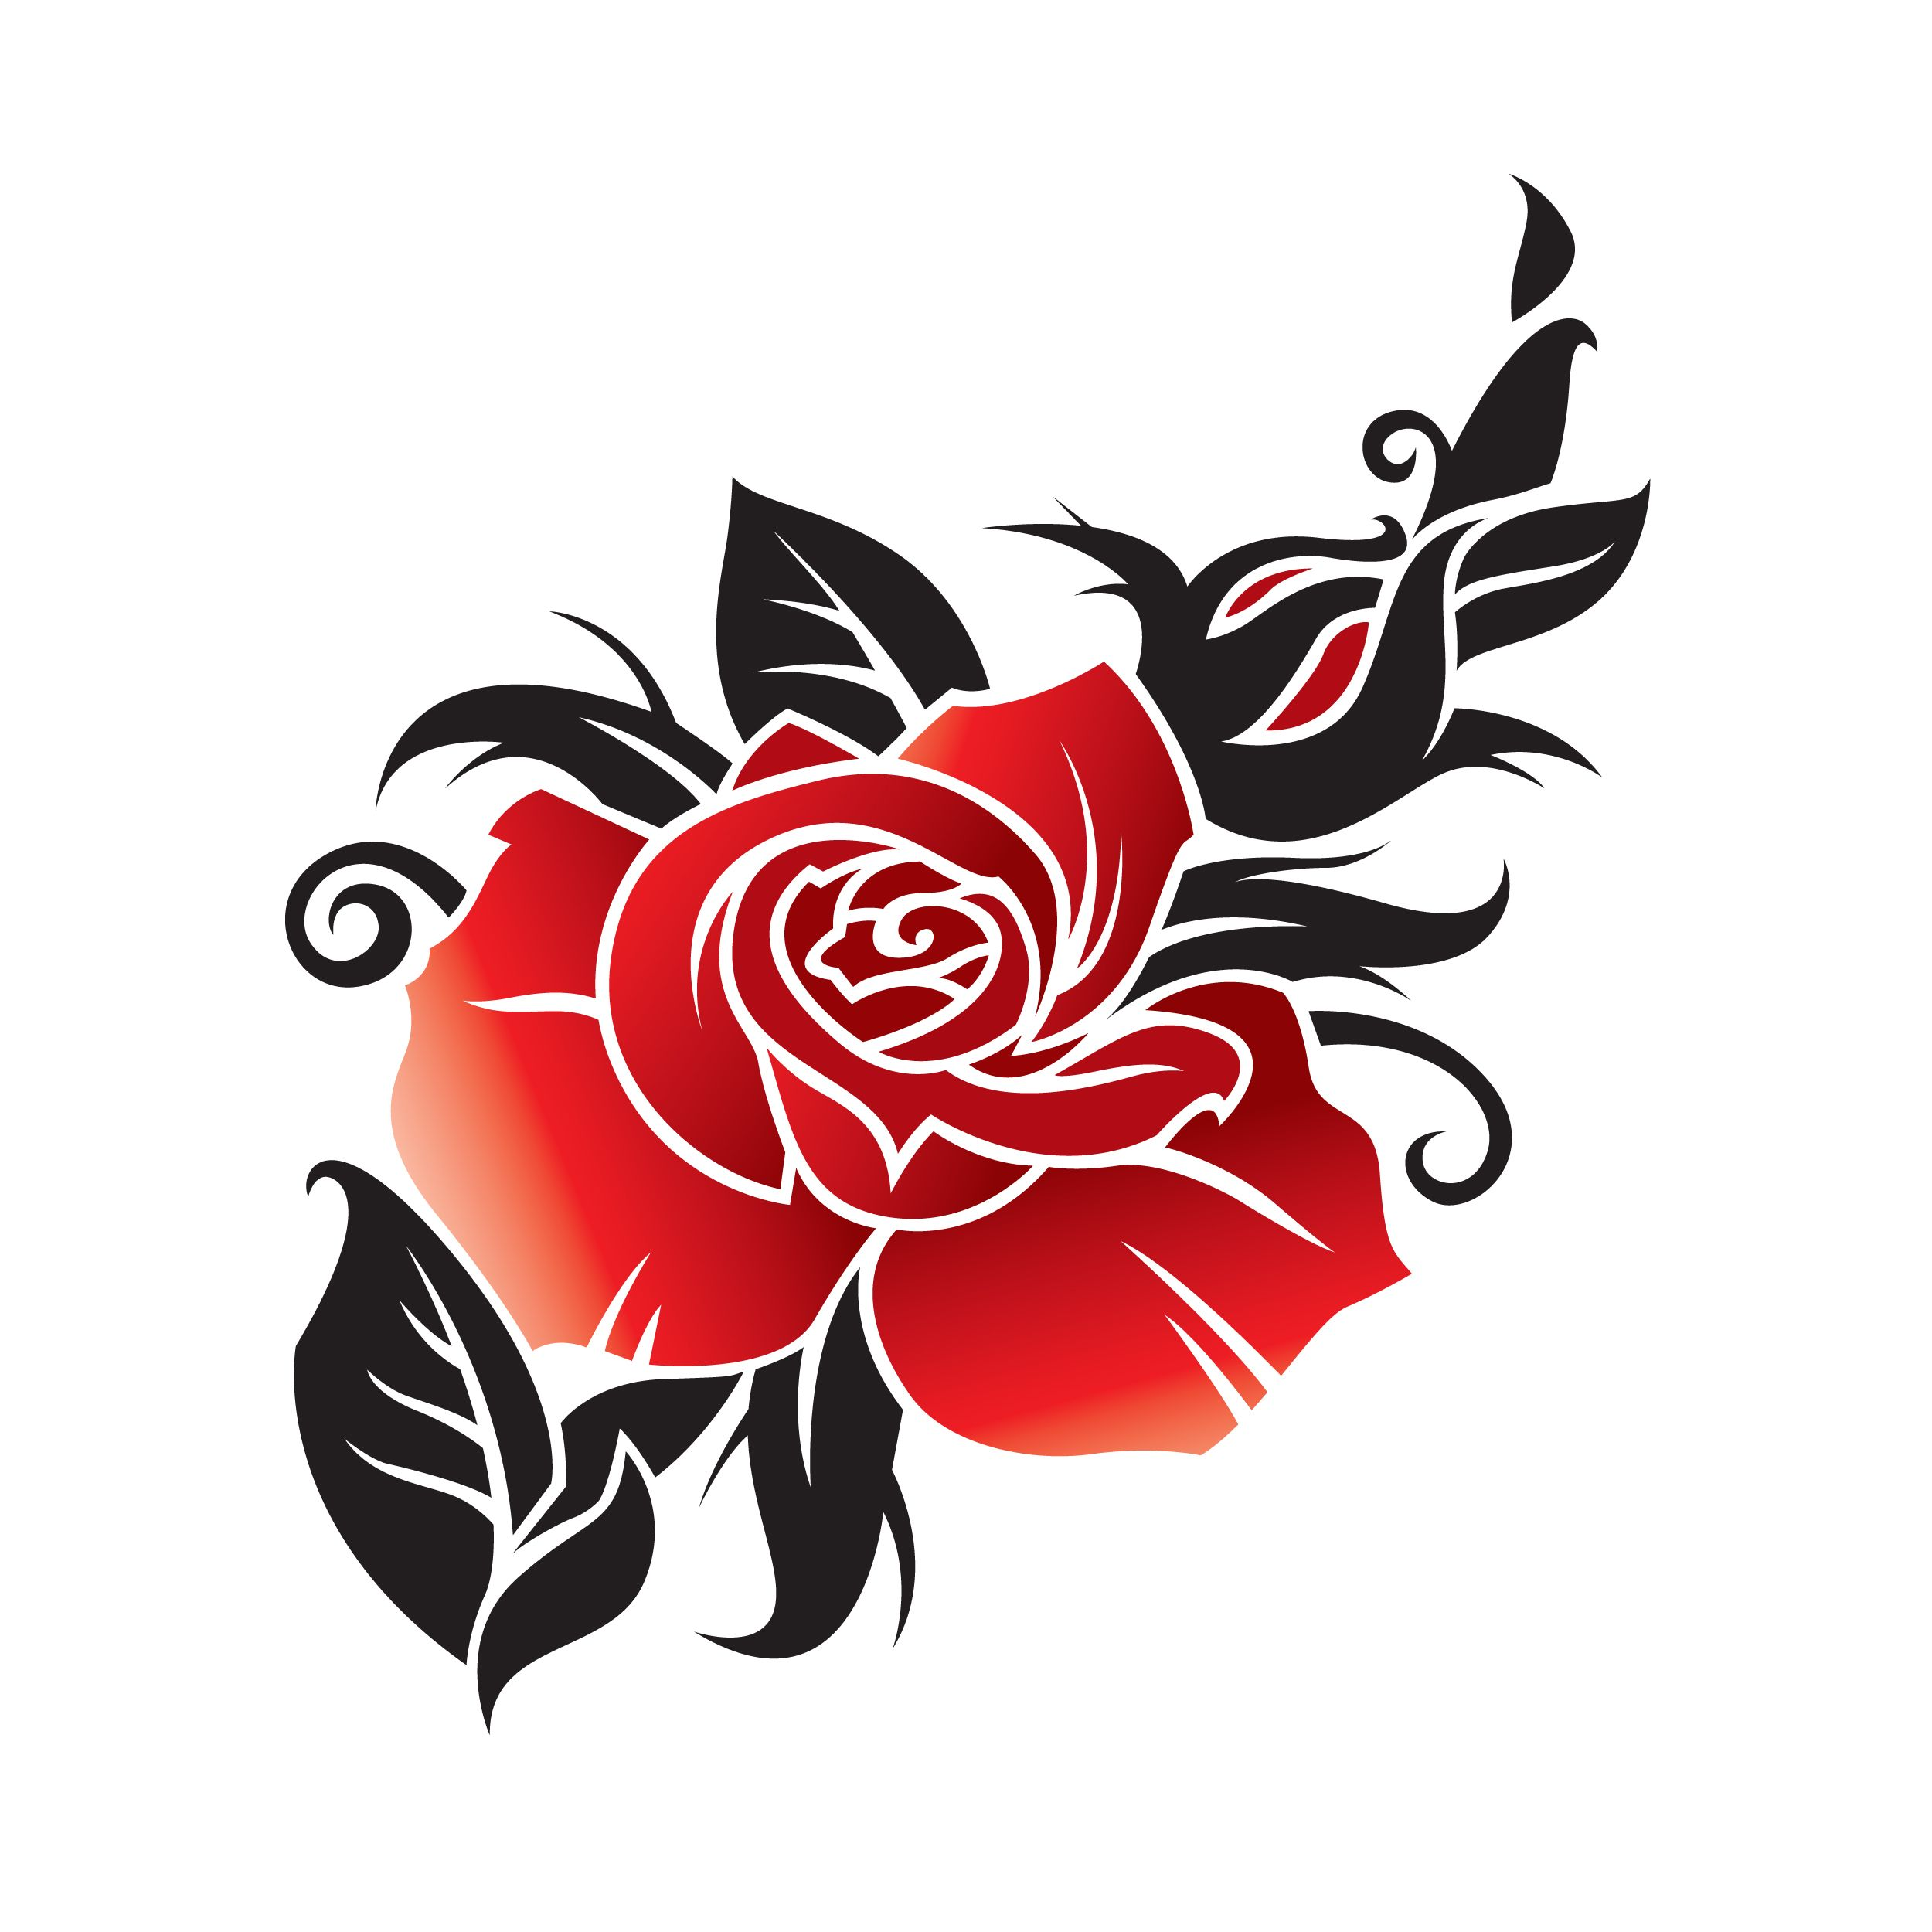 Rose tattoo clipart best.